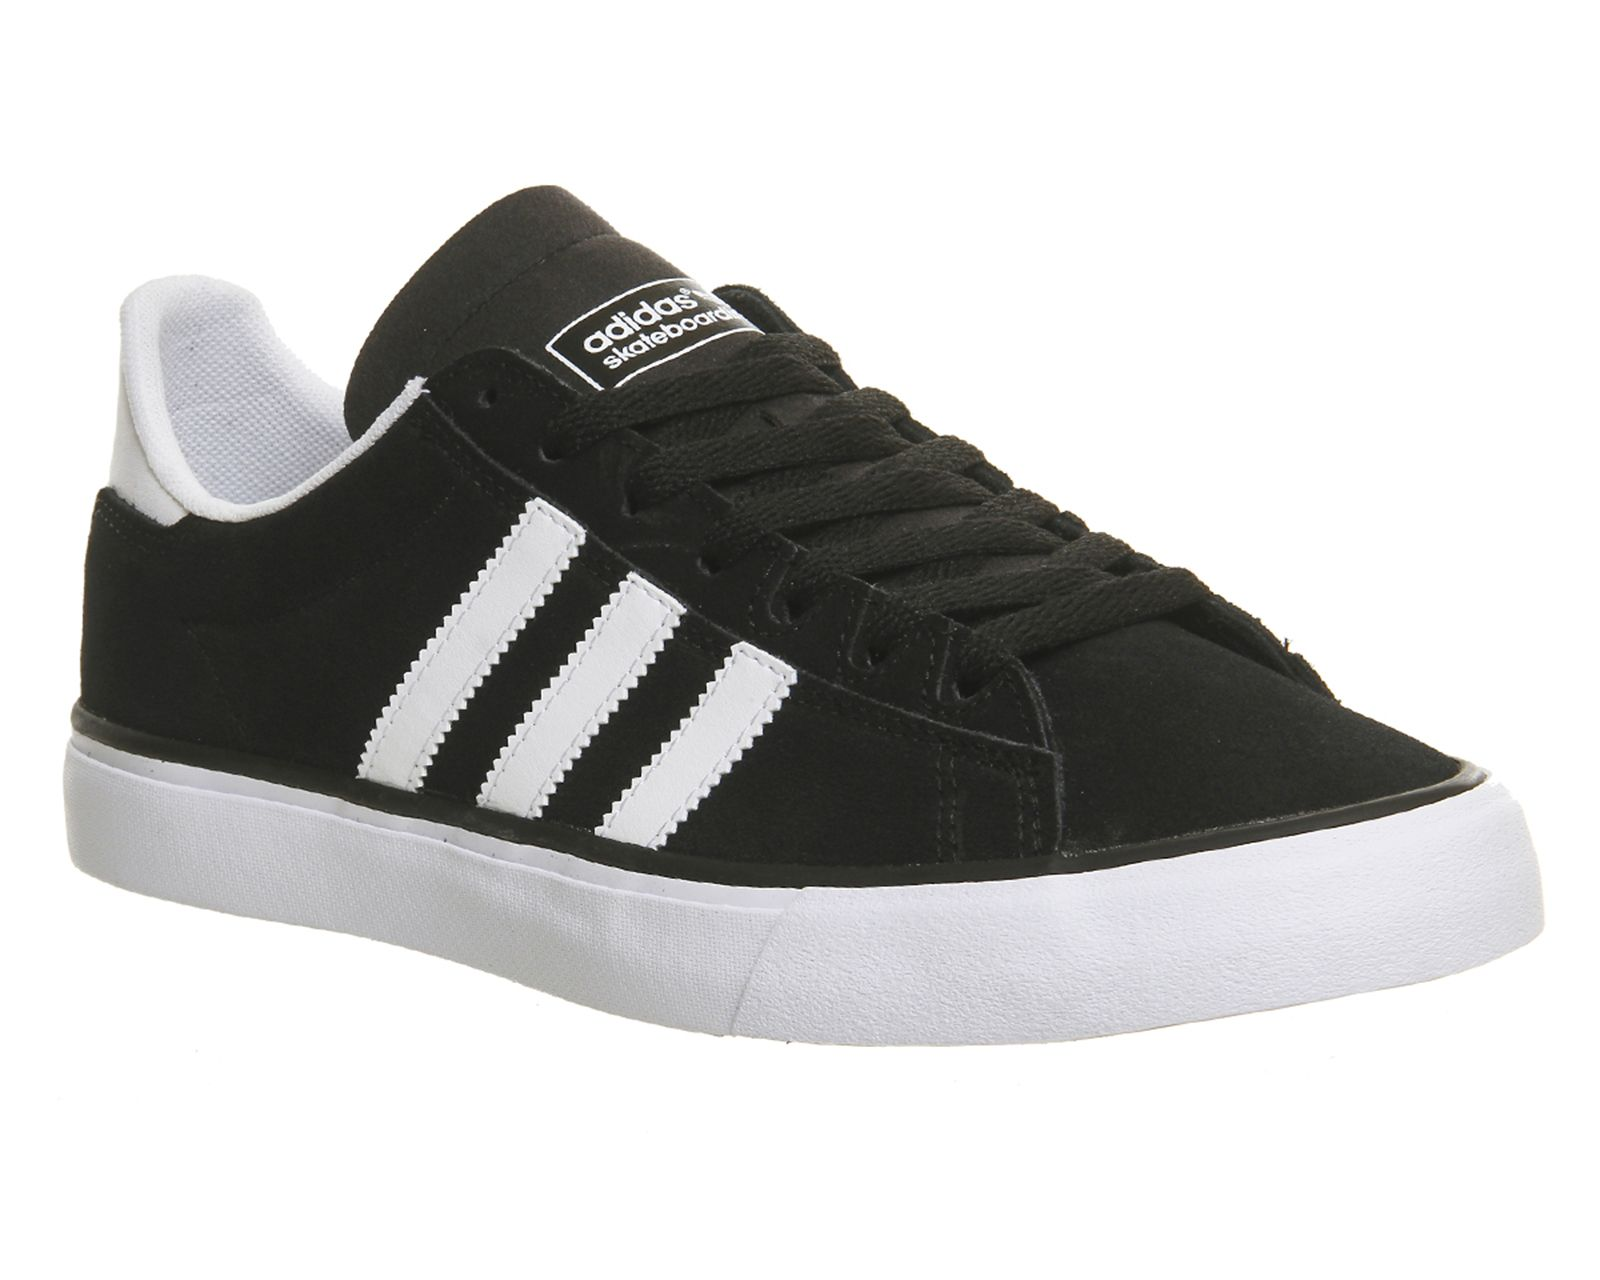 more photos be679 f8d40 Buy Black White Gum Adidas Campus Vulc Ii from OFFICE.co.uk.